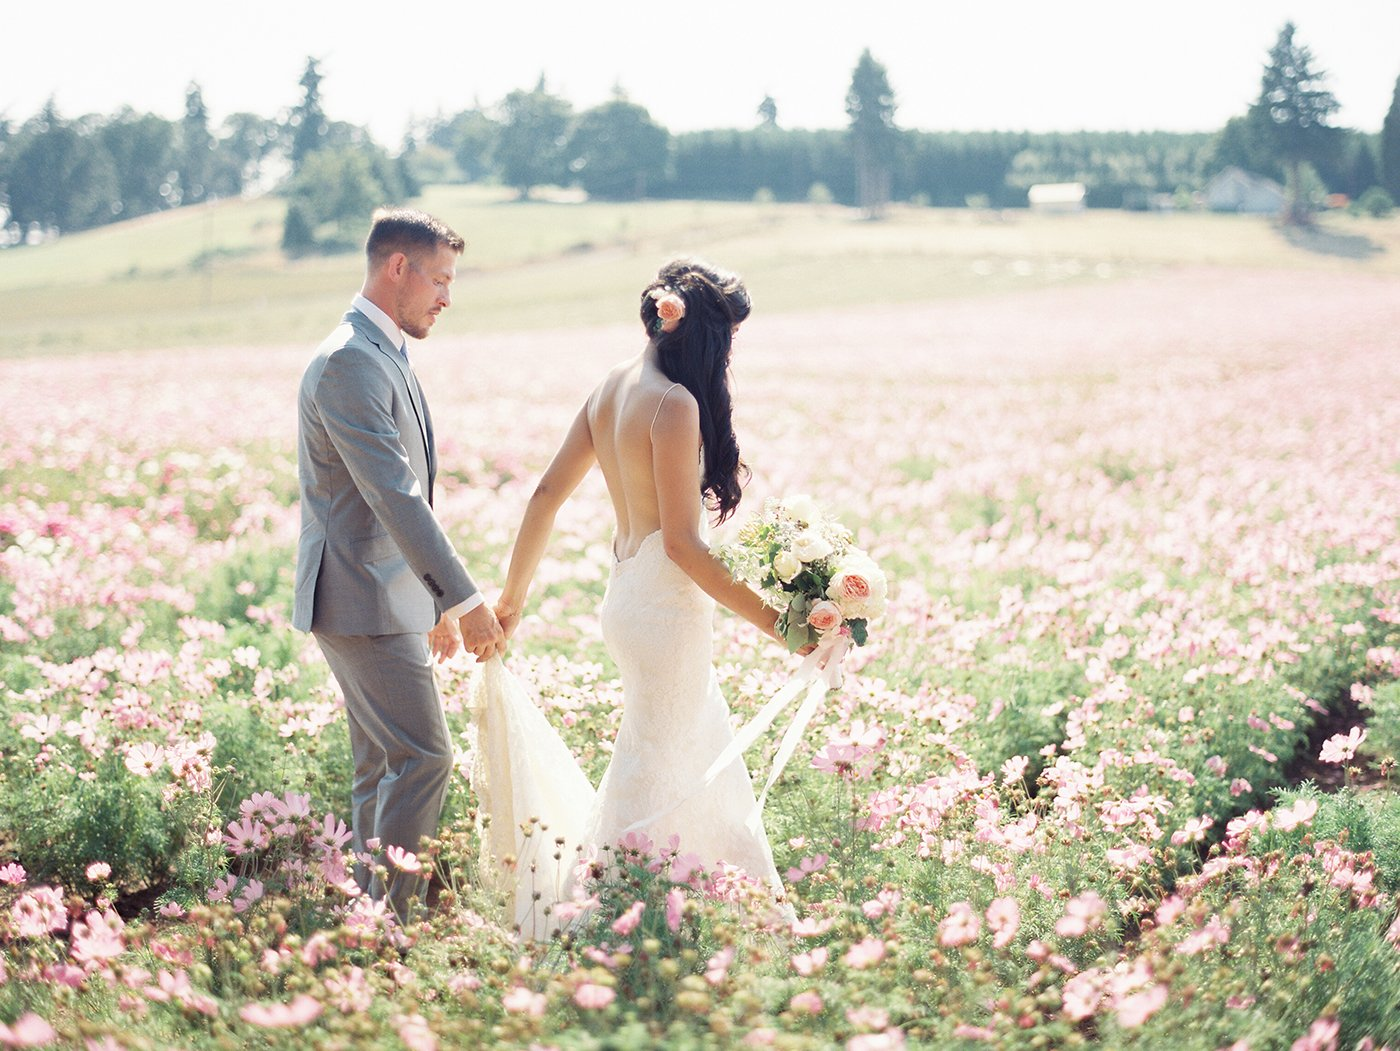 Bride and groom walking through a flower field